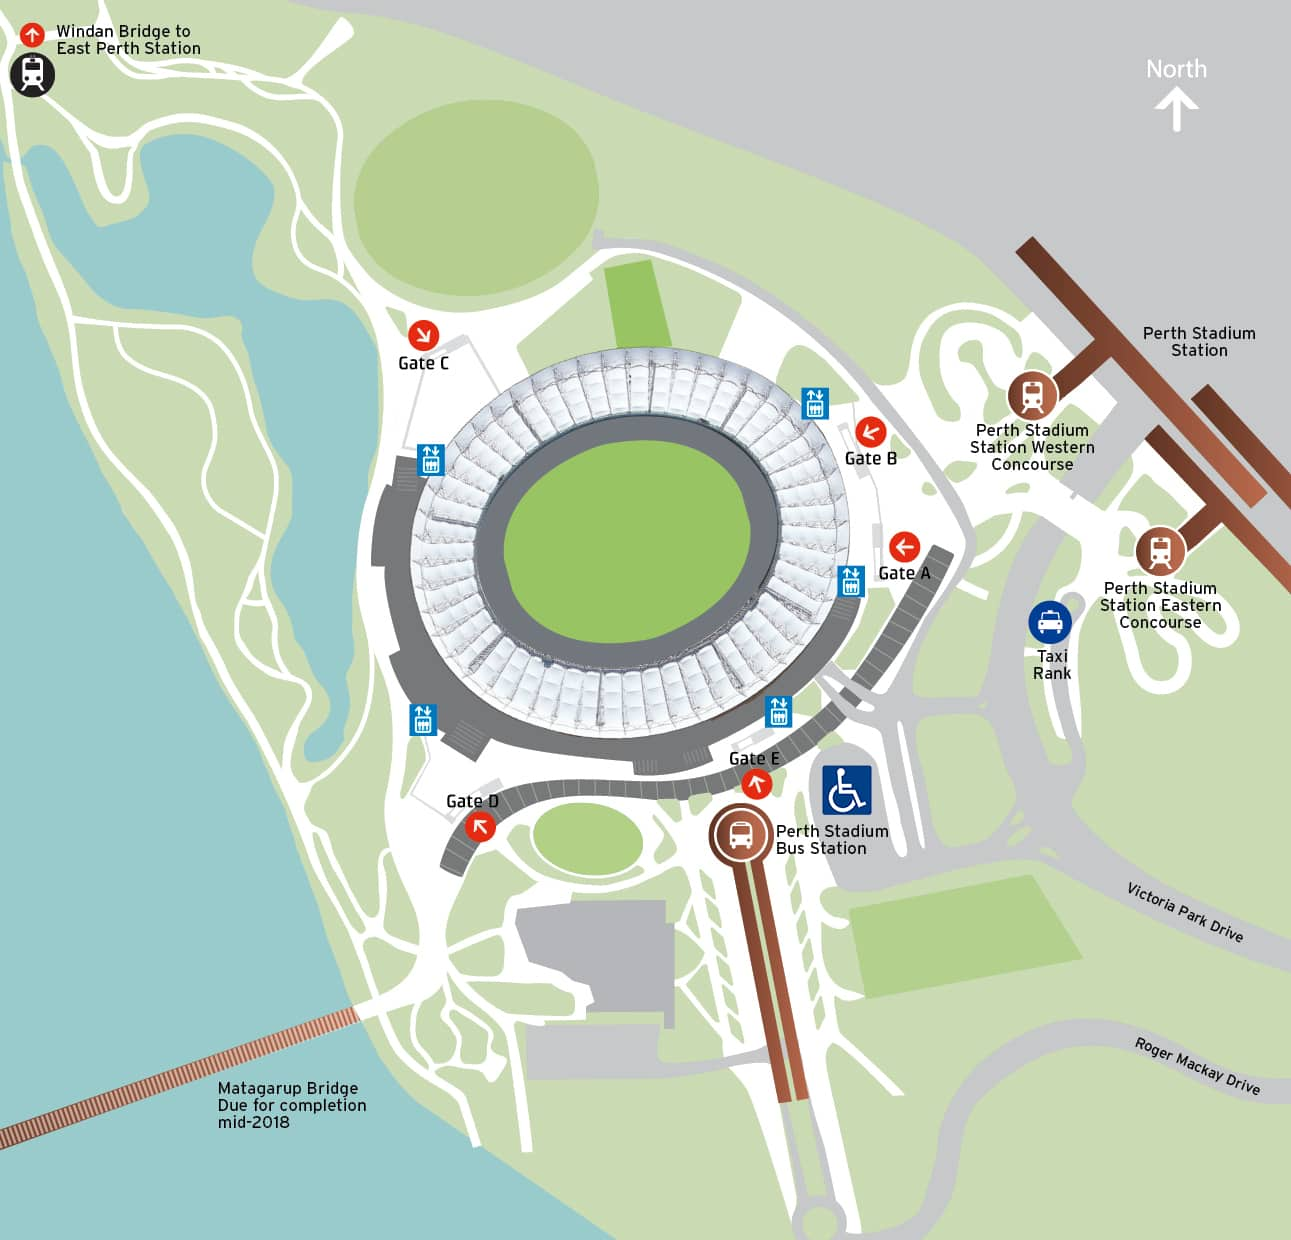 Optus Stadium Is There No Way To Get A Real Ground The Outlet So That It Can Have Address 333 Victoria Park Dr Burswood Wa 6100 Capacity 60000 Dimensions 165m X 130m